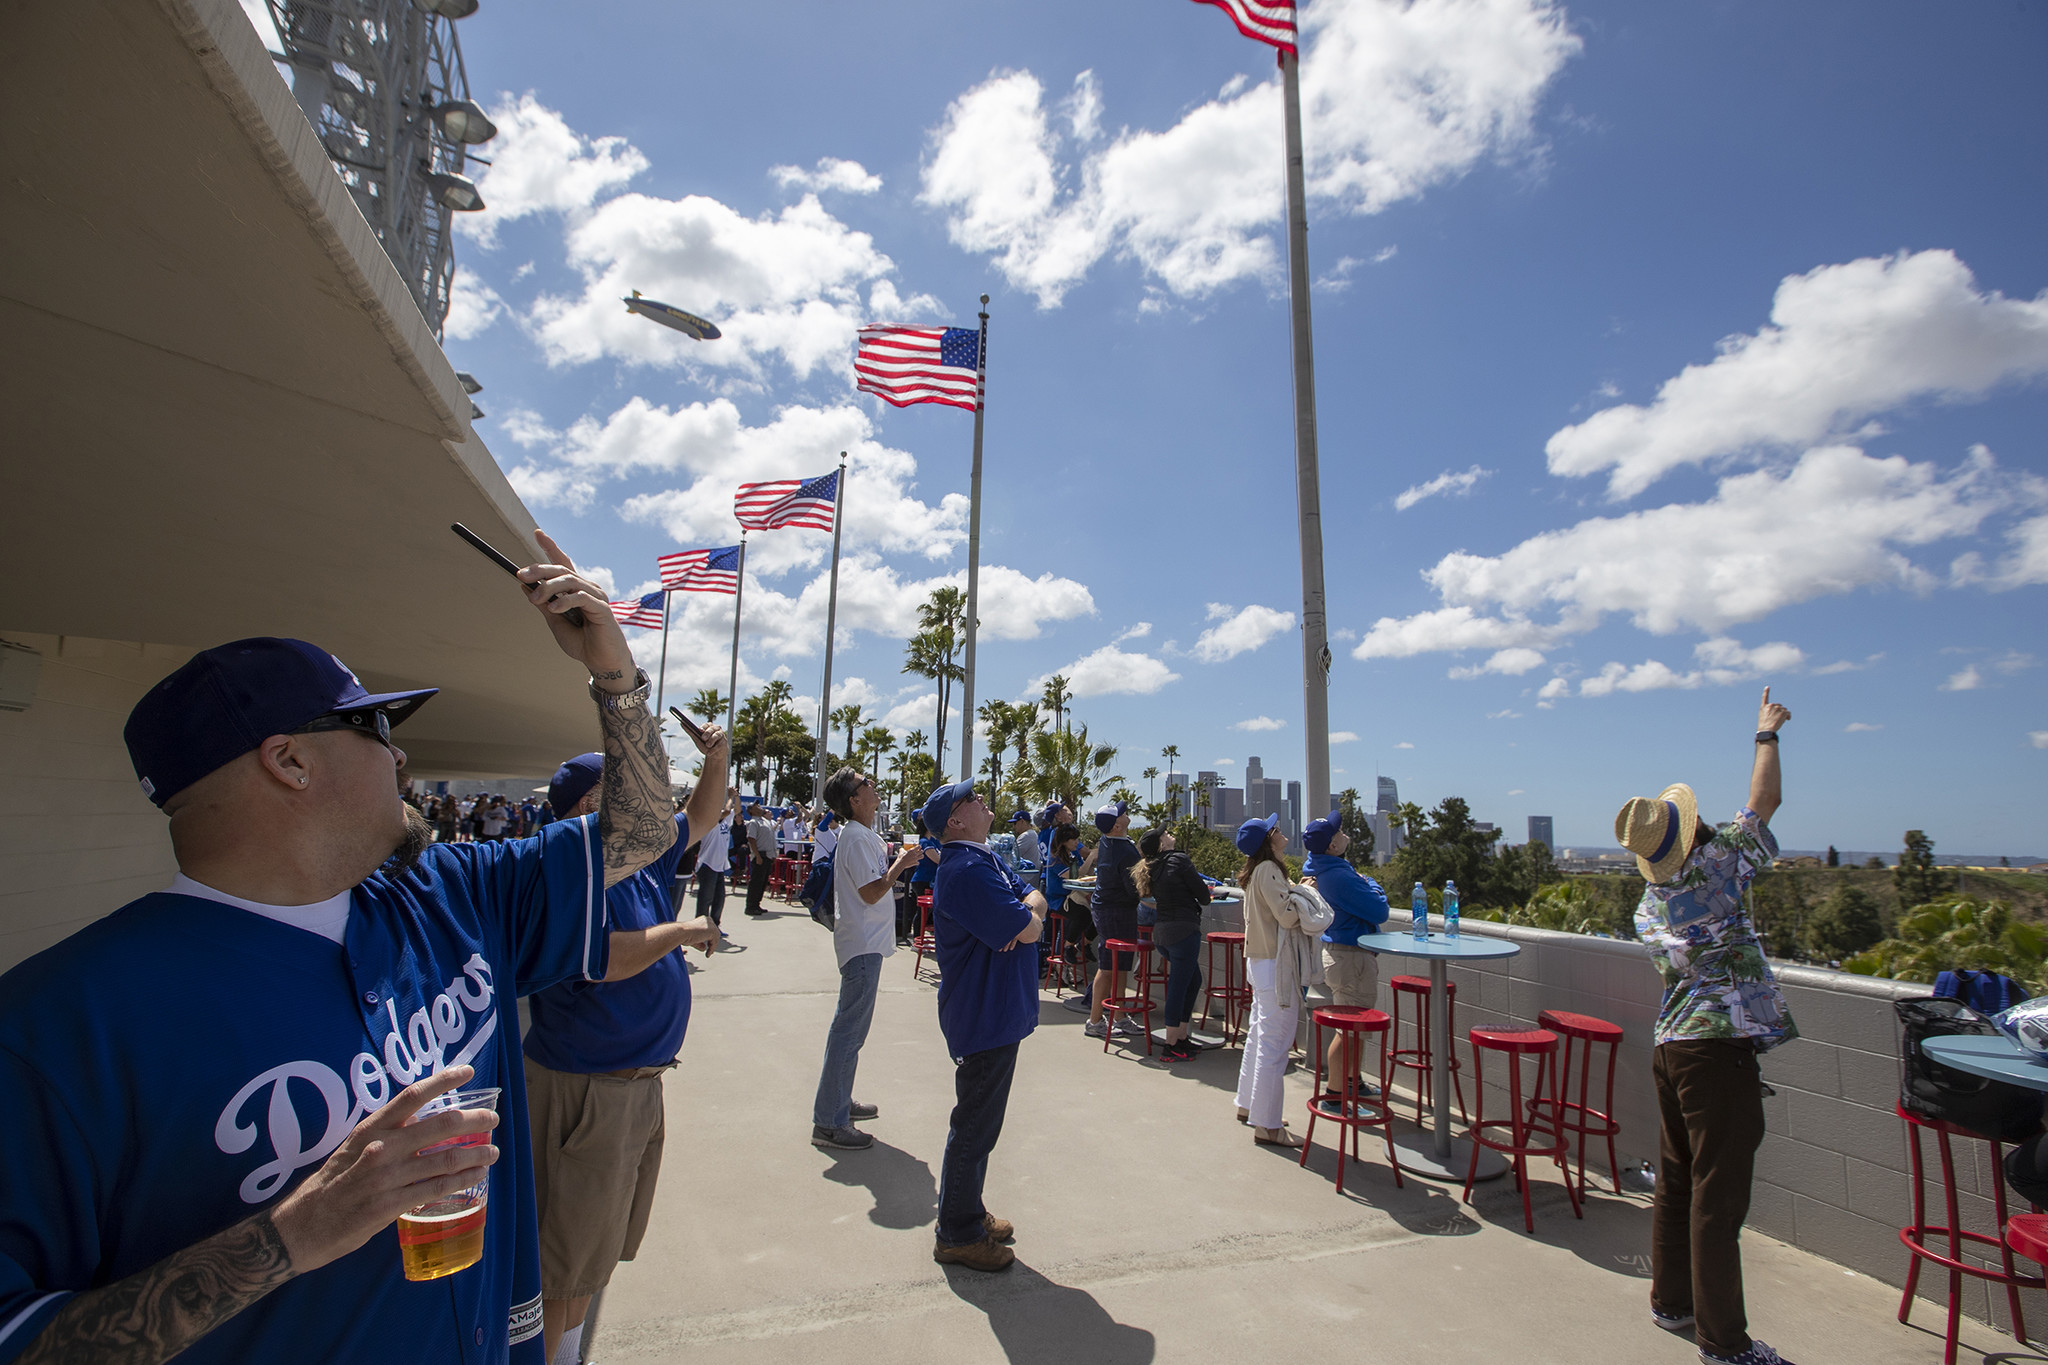 LOS ANGELES, CALIF. -- THURSDAY, MARCH 28, 2019: Dodgers fans watch the U.S. Army Golden Knights par